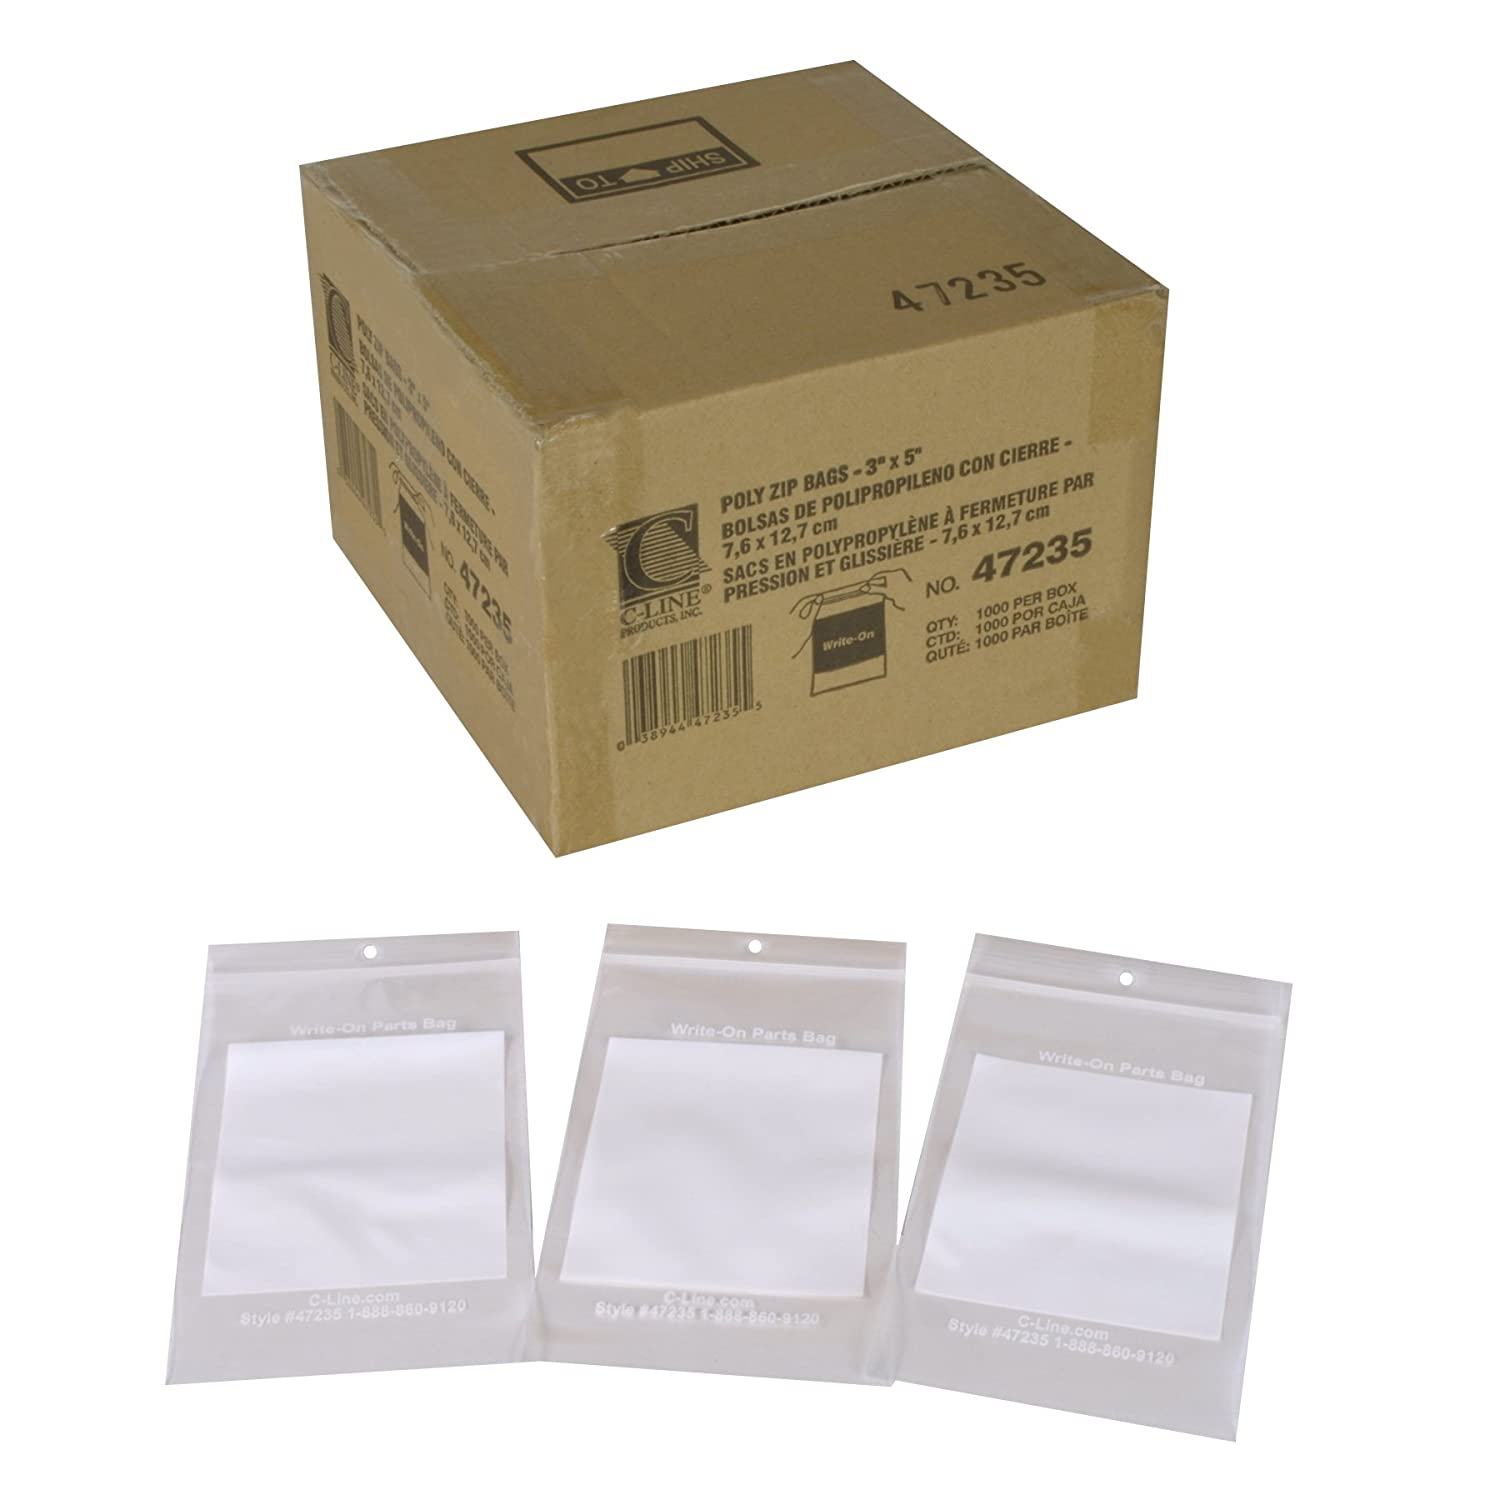 C-Line Write-On Reclosable Small Parts Storage Bags, 3 x 5 Inches, 1000 per Box (47235)